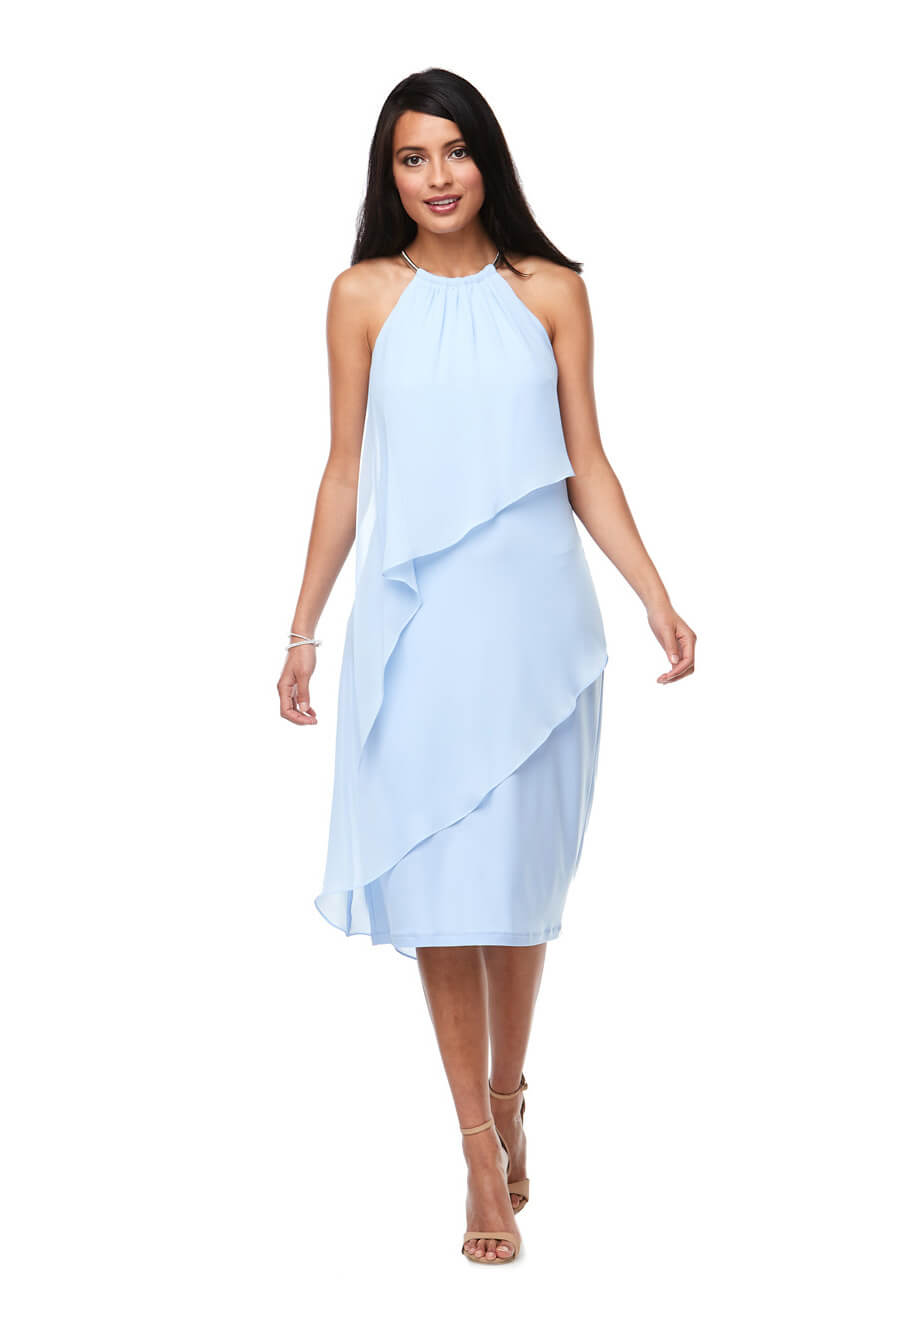 Layered chiffon halter cocktail dress with silver trim